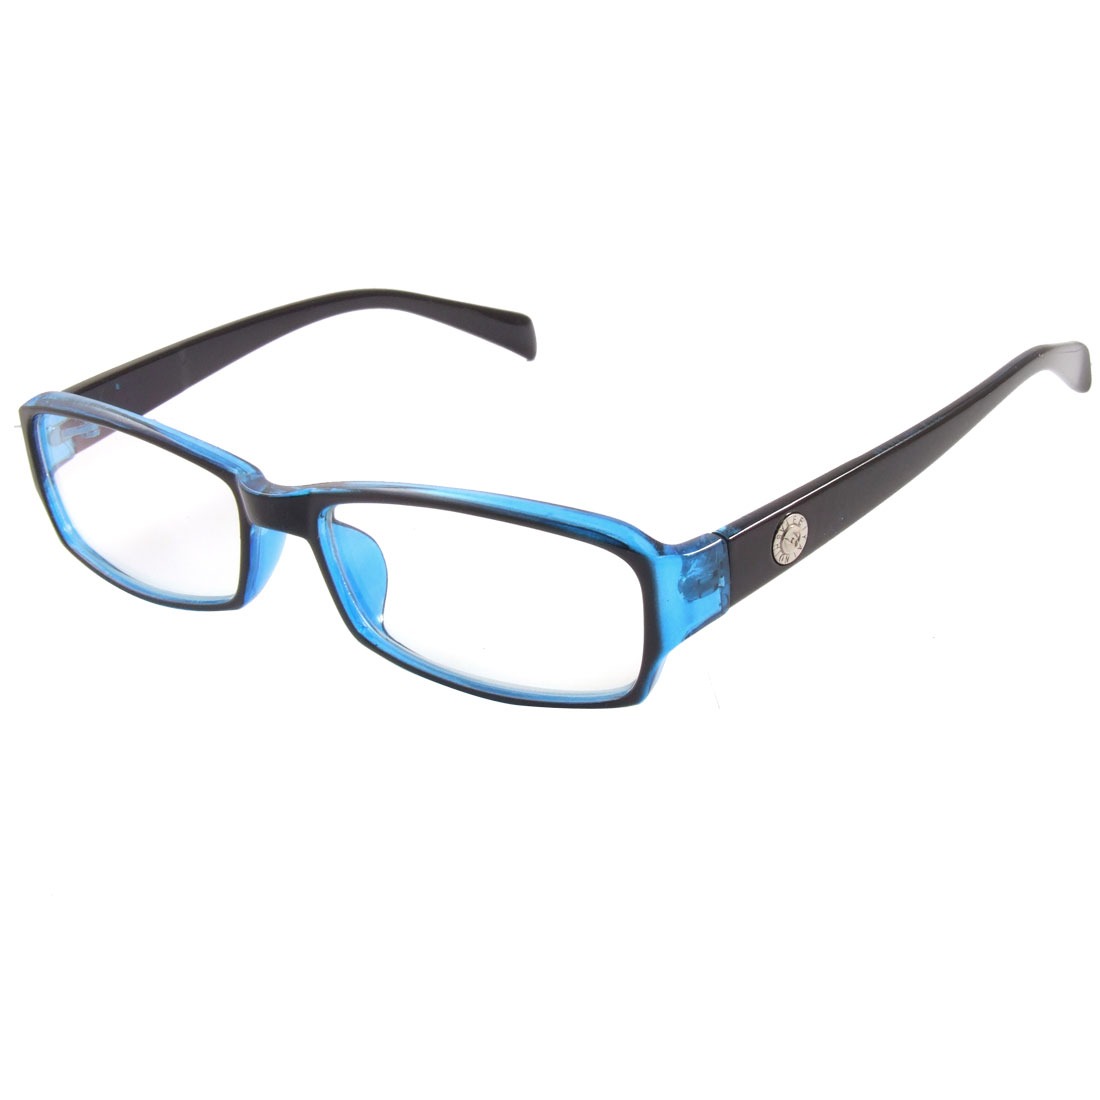 Black Arms Blue Frame Multi Coated Lens Plain Glasses Eyeglass for Ladies